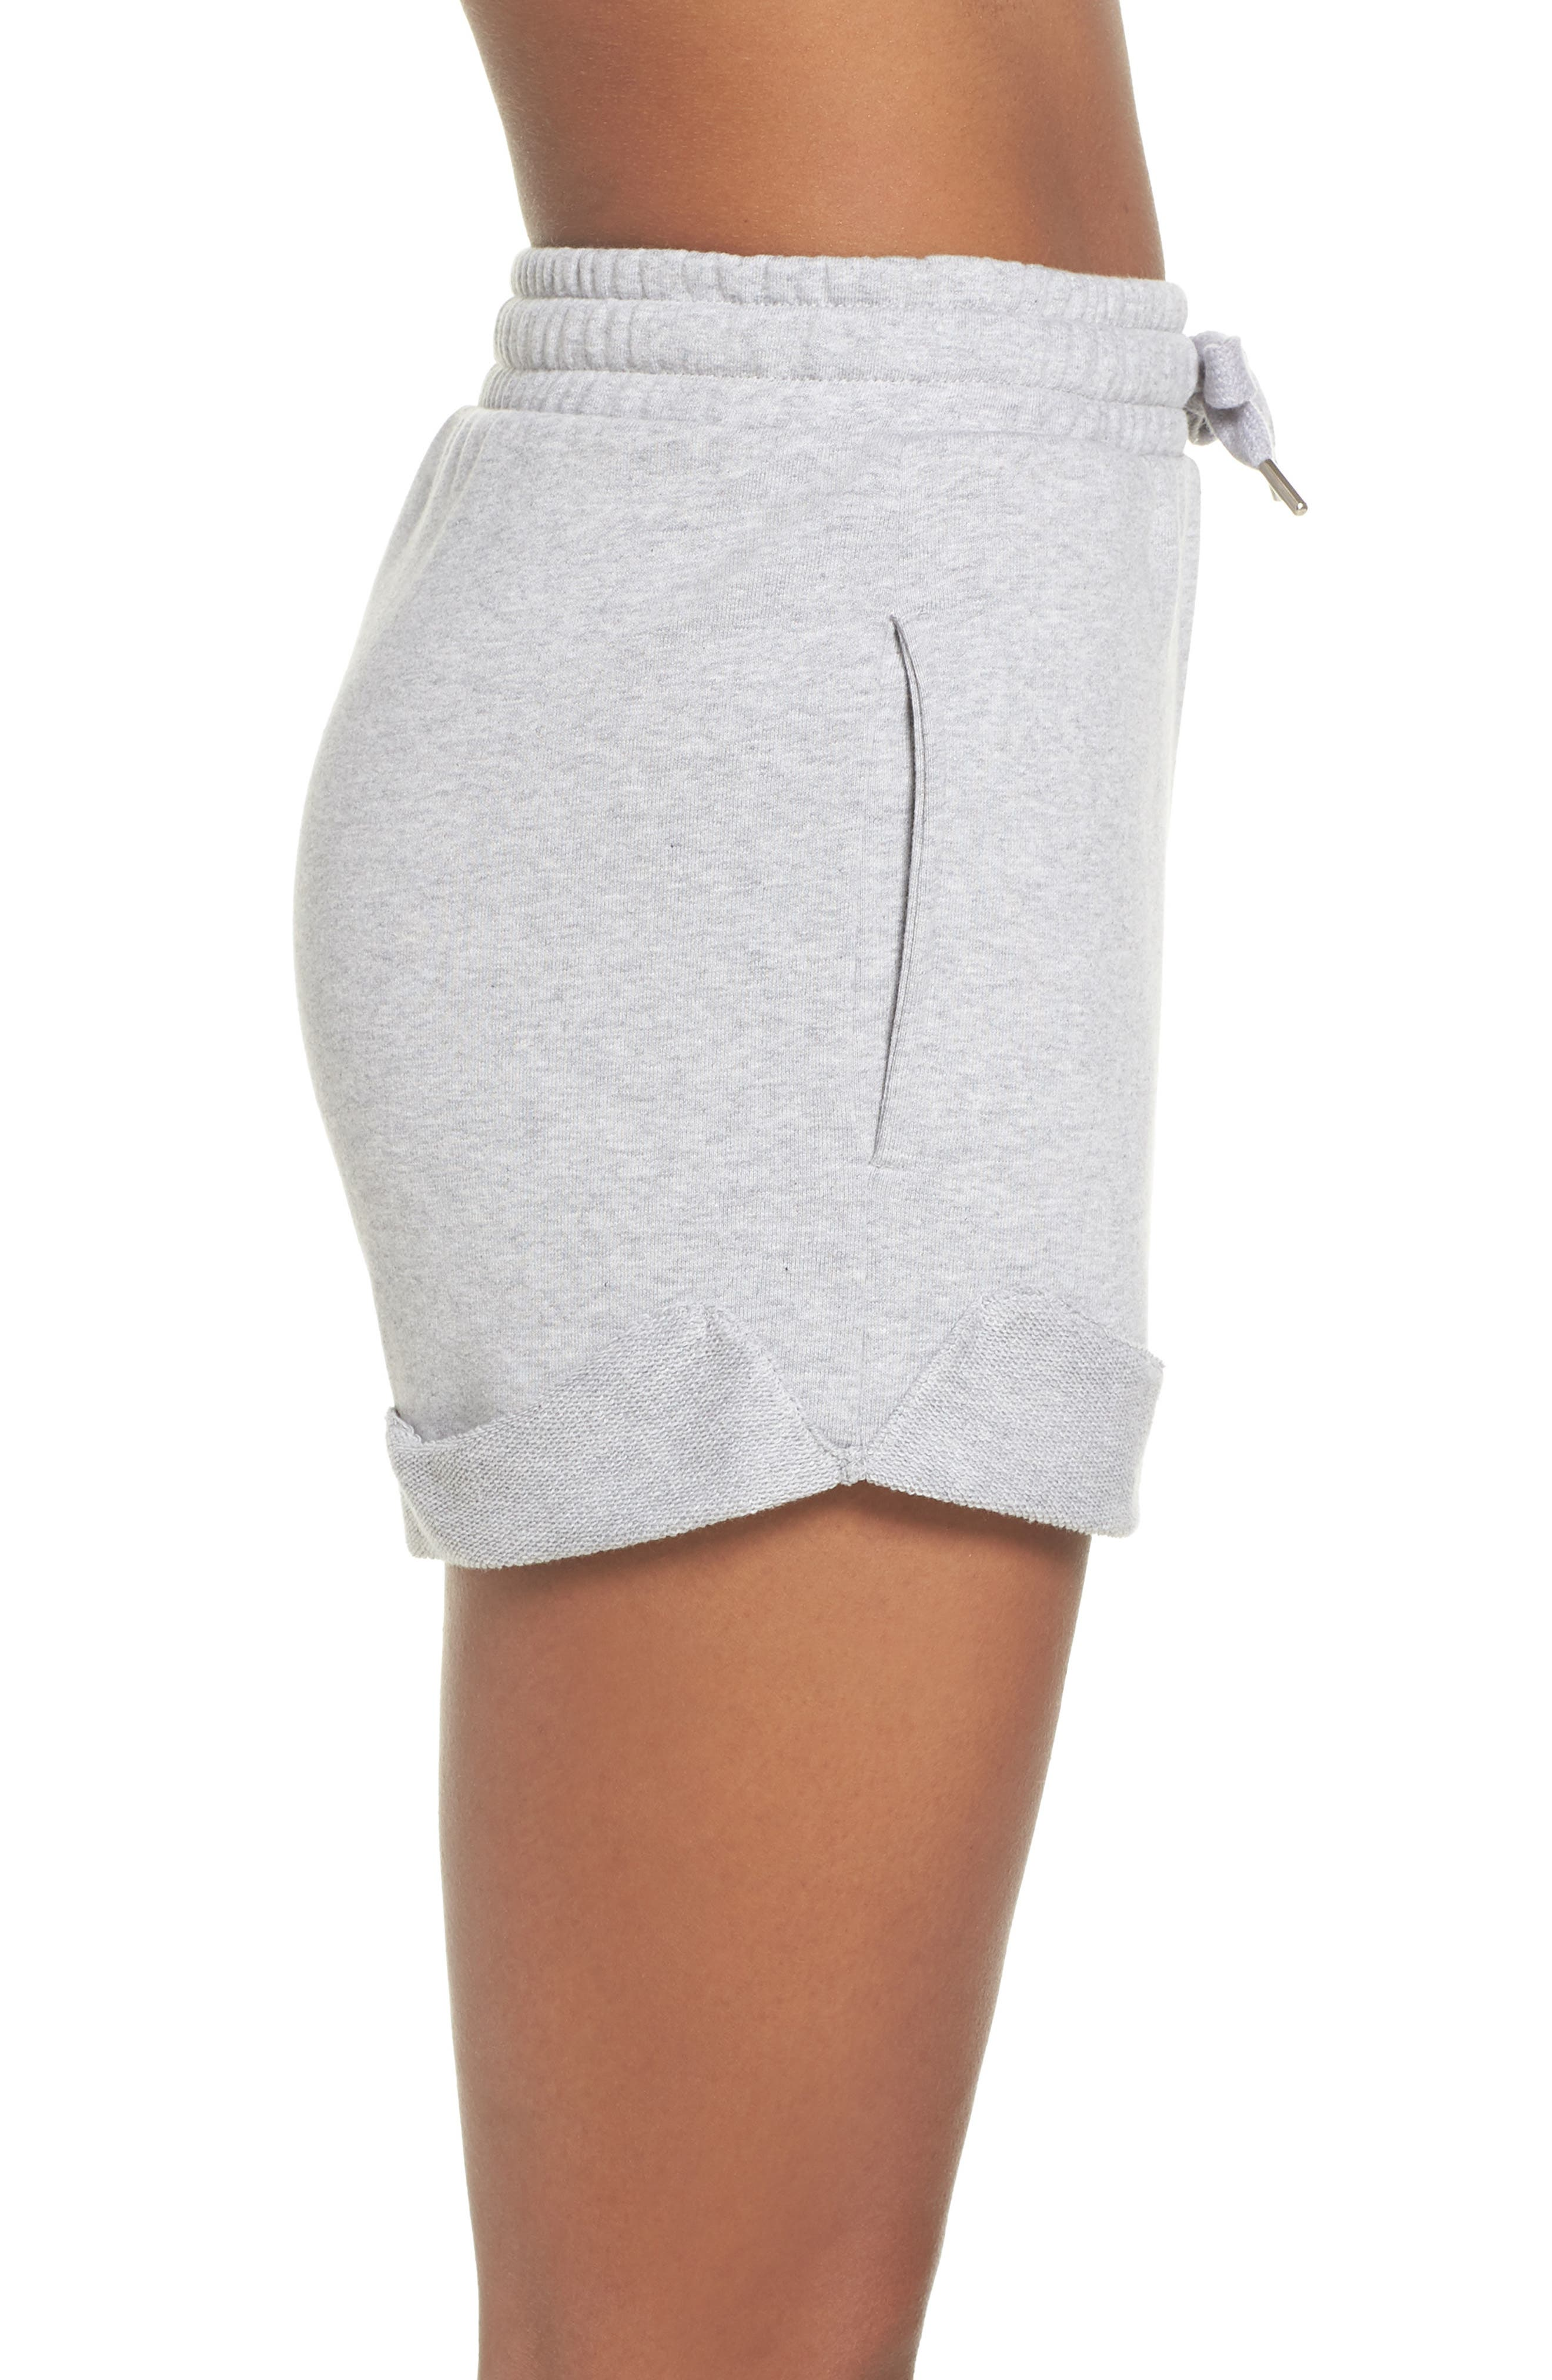 French Terry High Waist Shorts,                             Alternate thumbnail 3, color,                             020